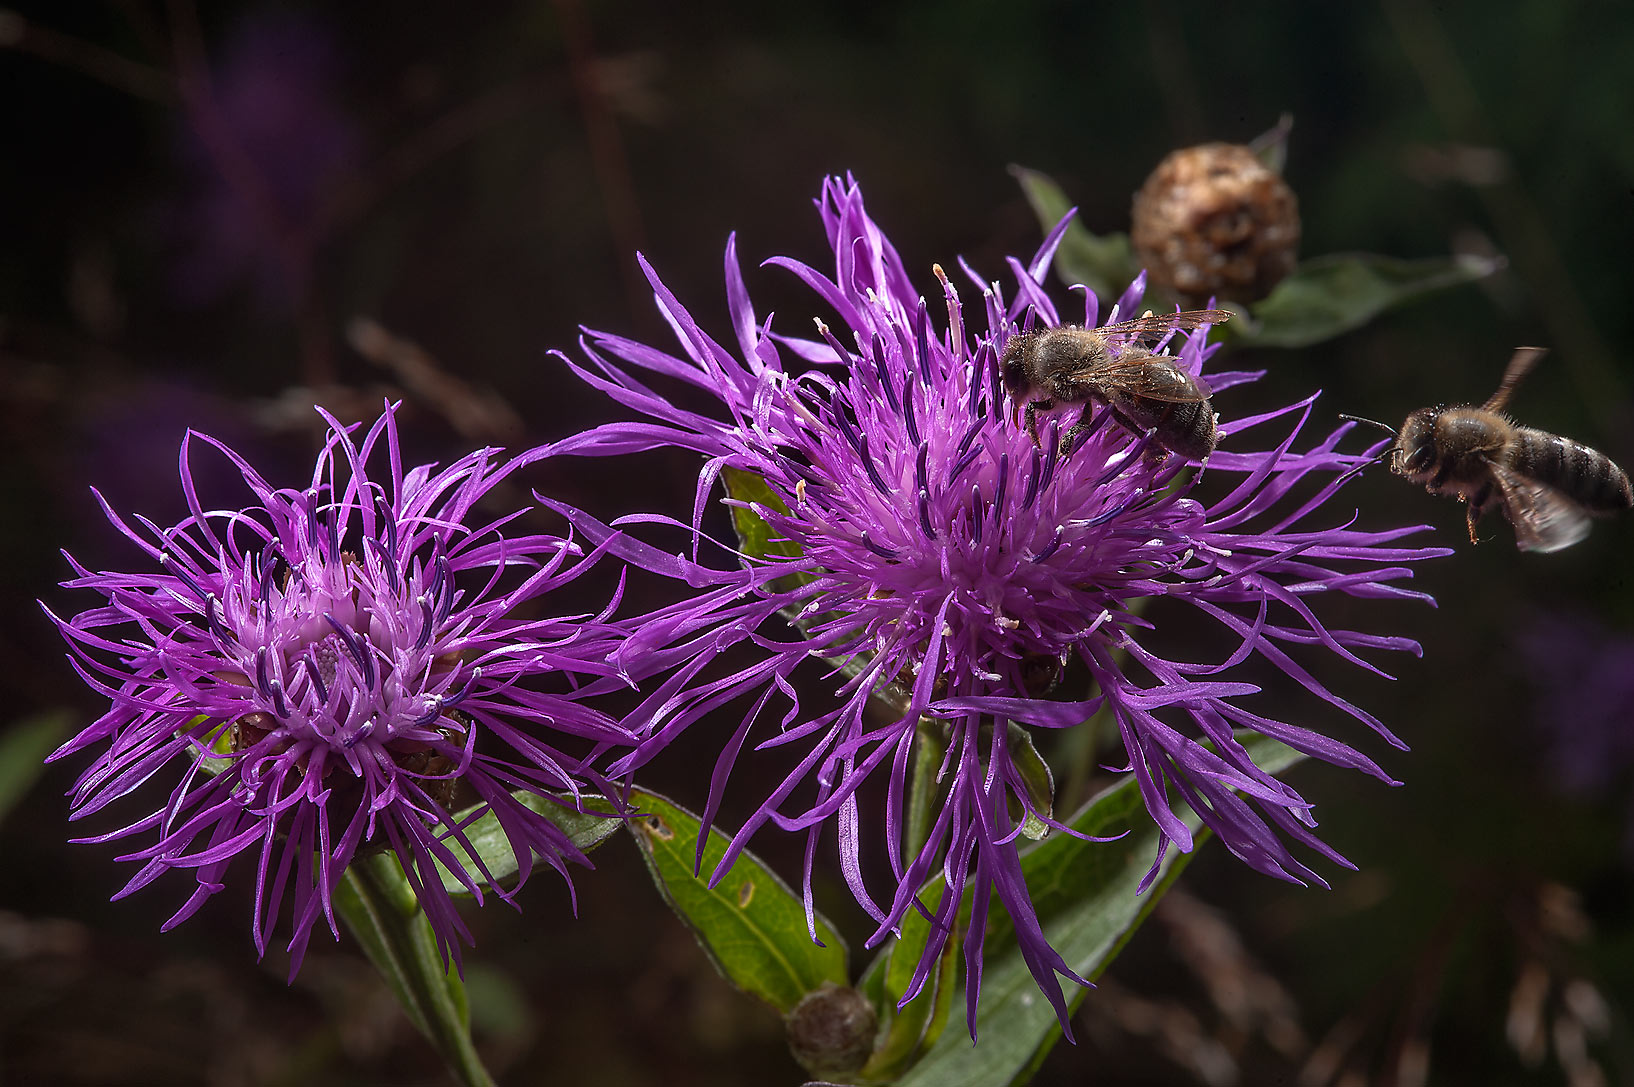 Brown Knapweed (Centaurea jacea, Russian name...south from St.Petersburg, Russia